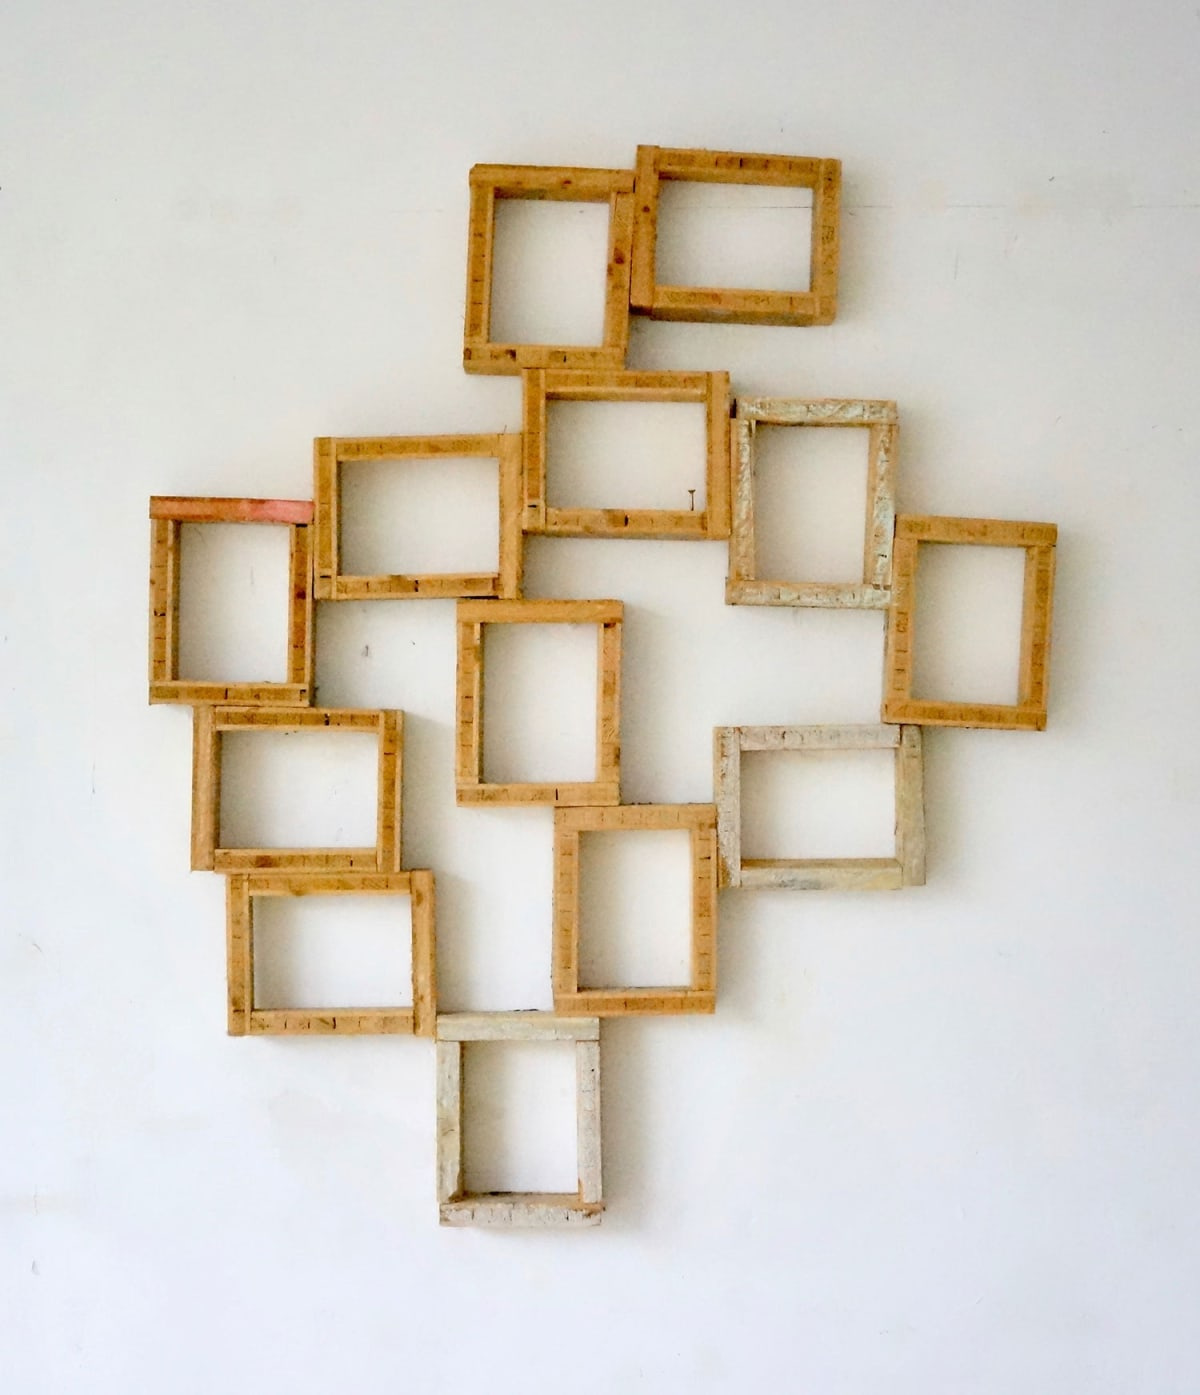 wood sculpture like frames hanging as a wallpiece, artwork by ernst koslitsch titeled selfportrait as boxes